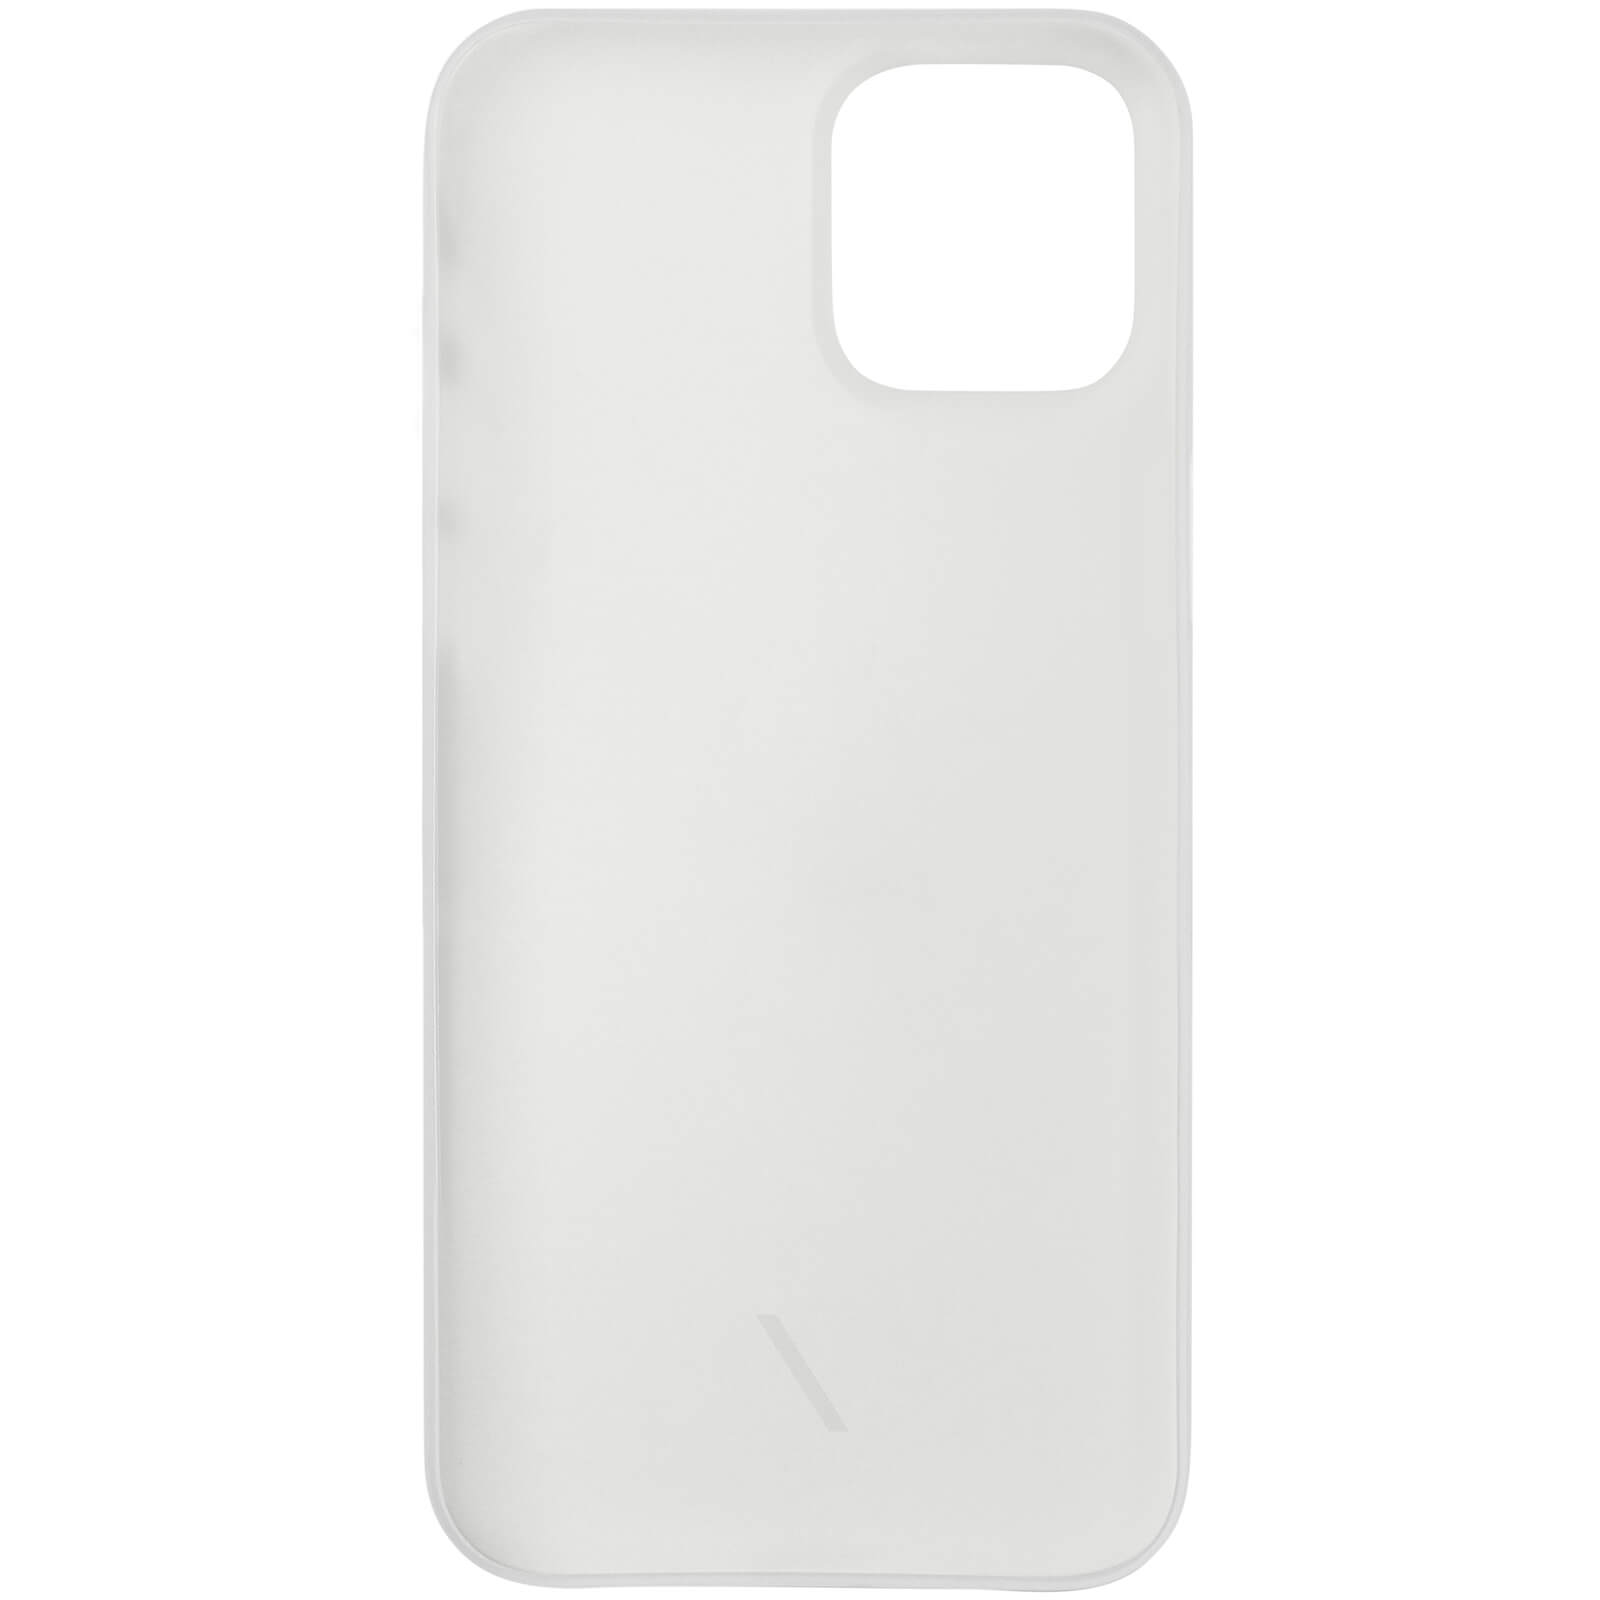 Native Union Clic Air Anti-Bacterial iPhone Case - Frost - 12 Pro Max